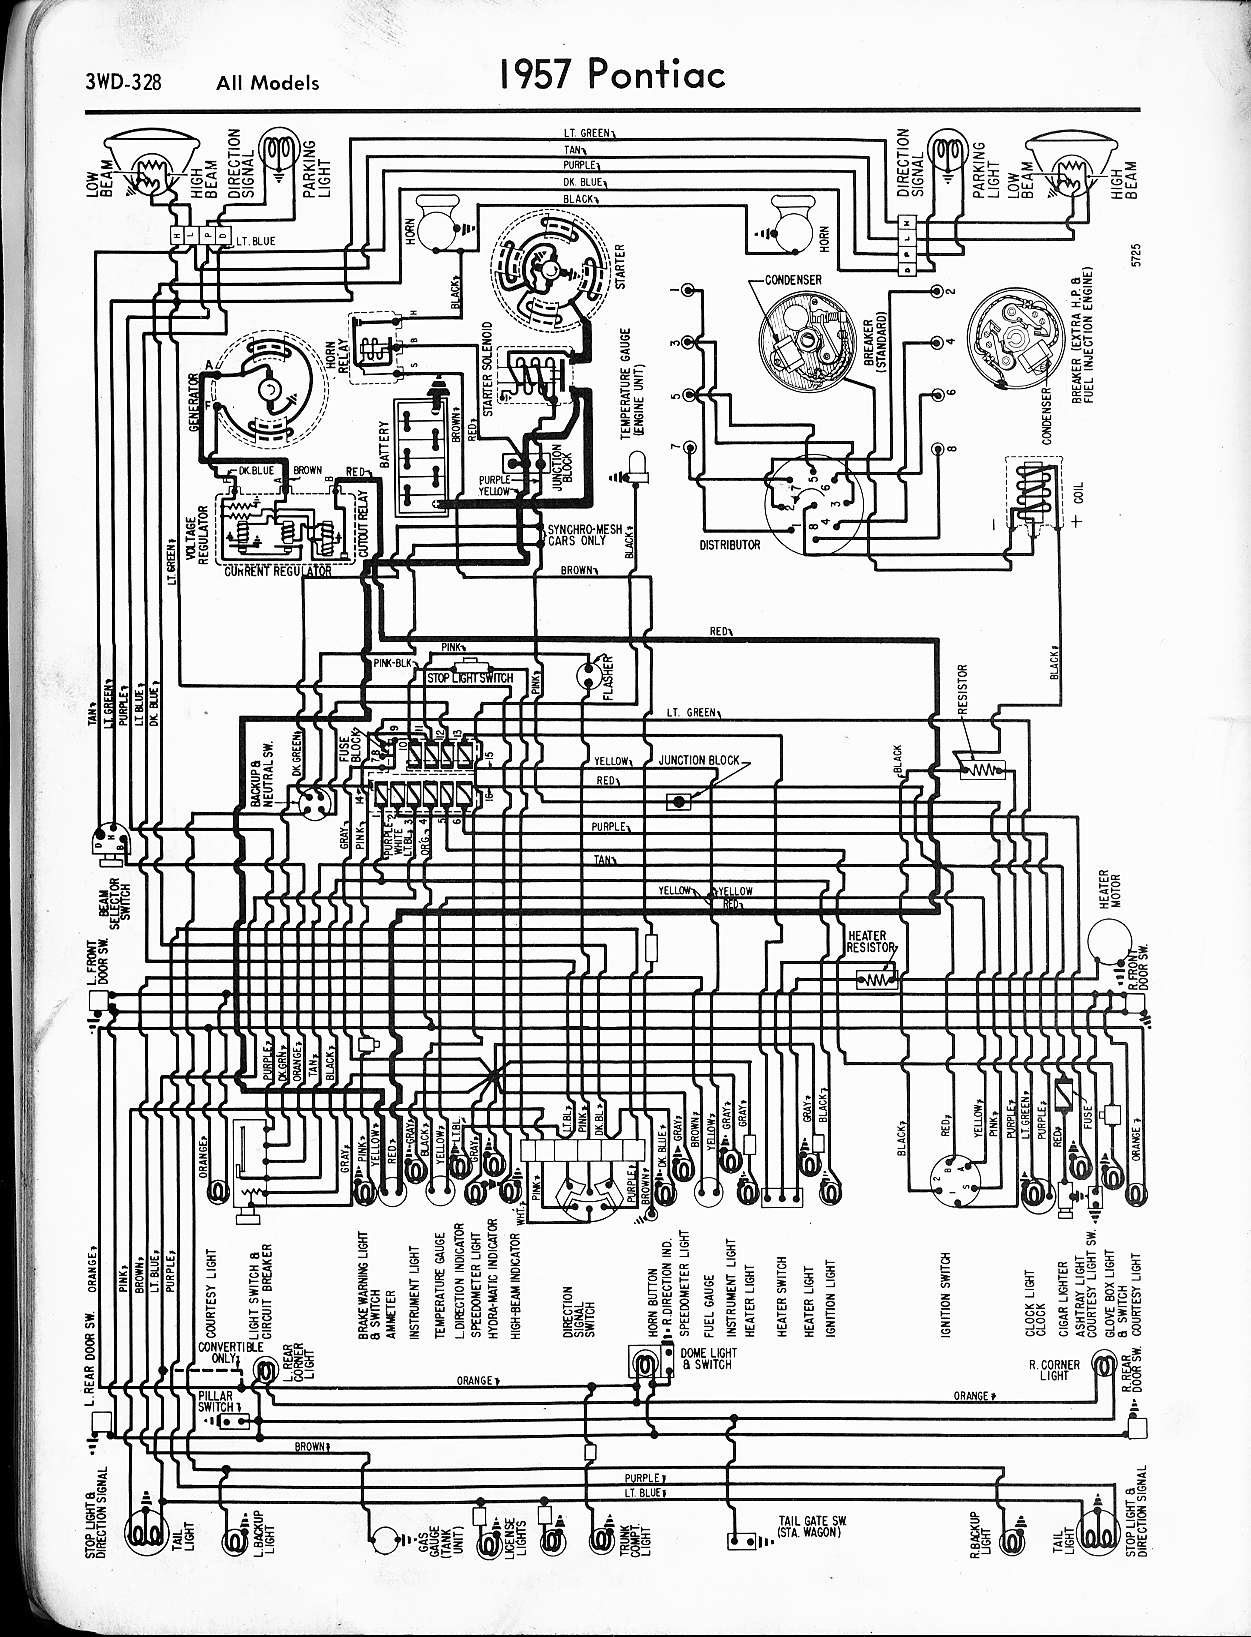 1984 Pontiac Grand Prix Wiring Diagram Wiring Diagram Level Level Lionsclubviterbo It